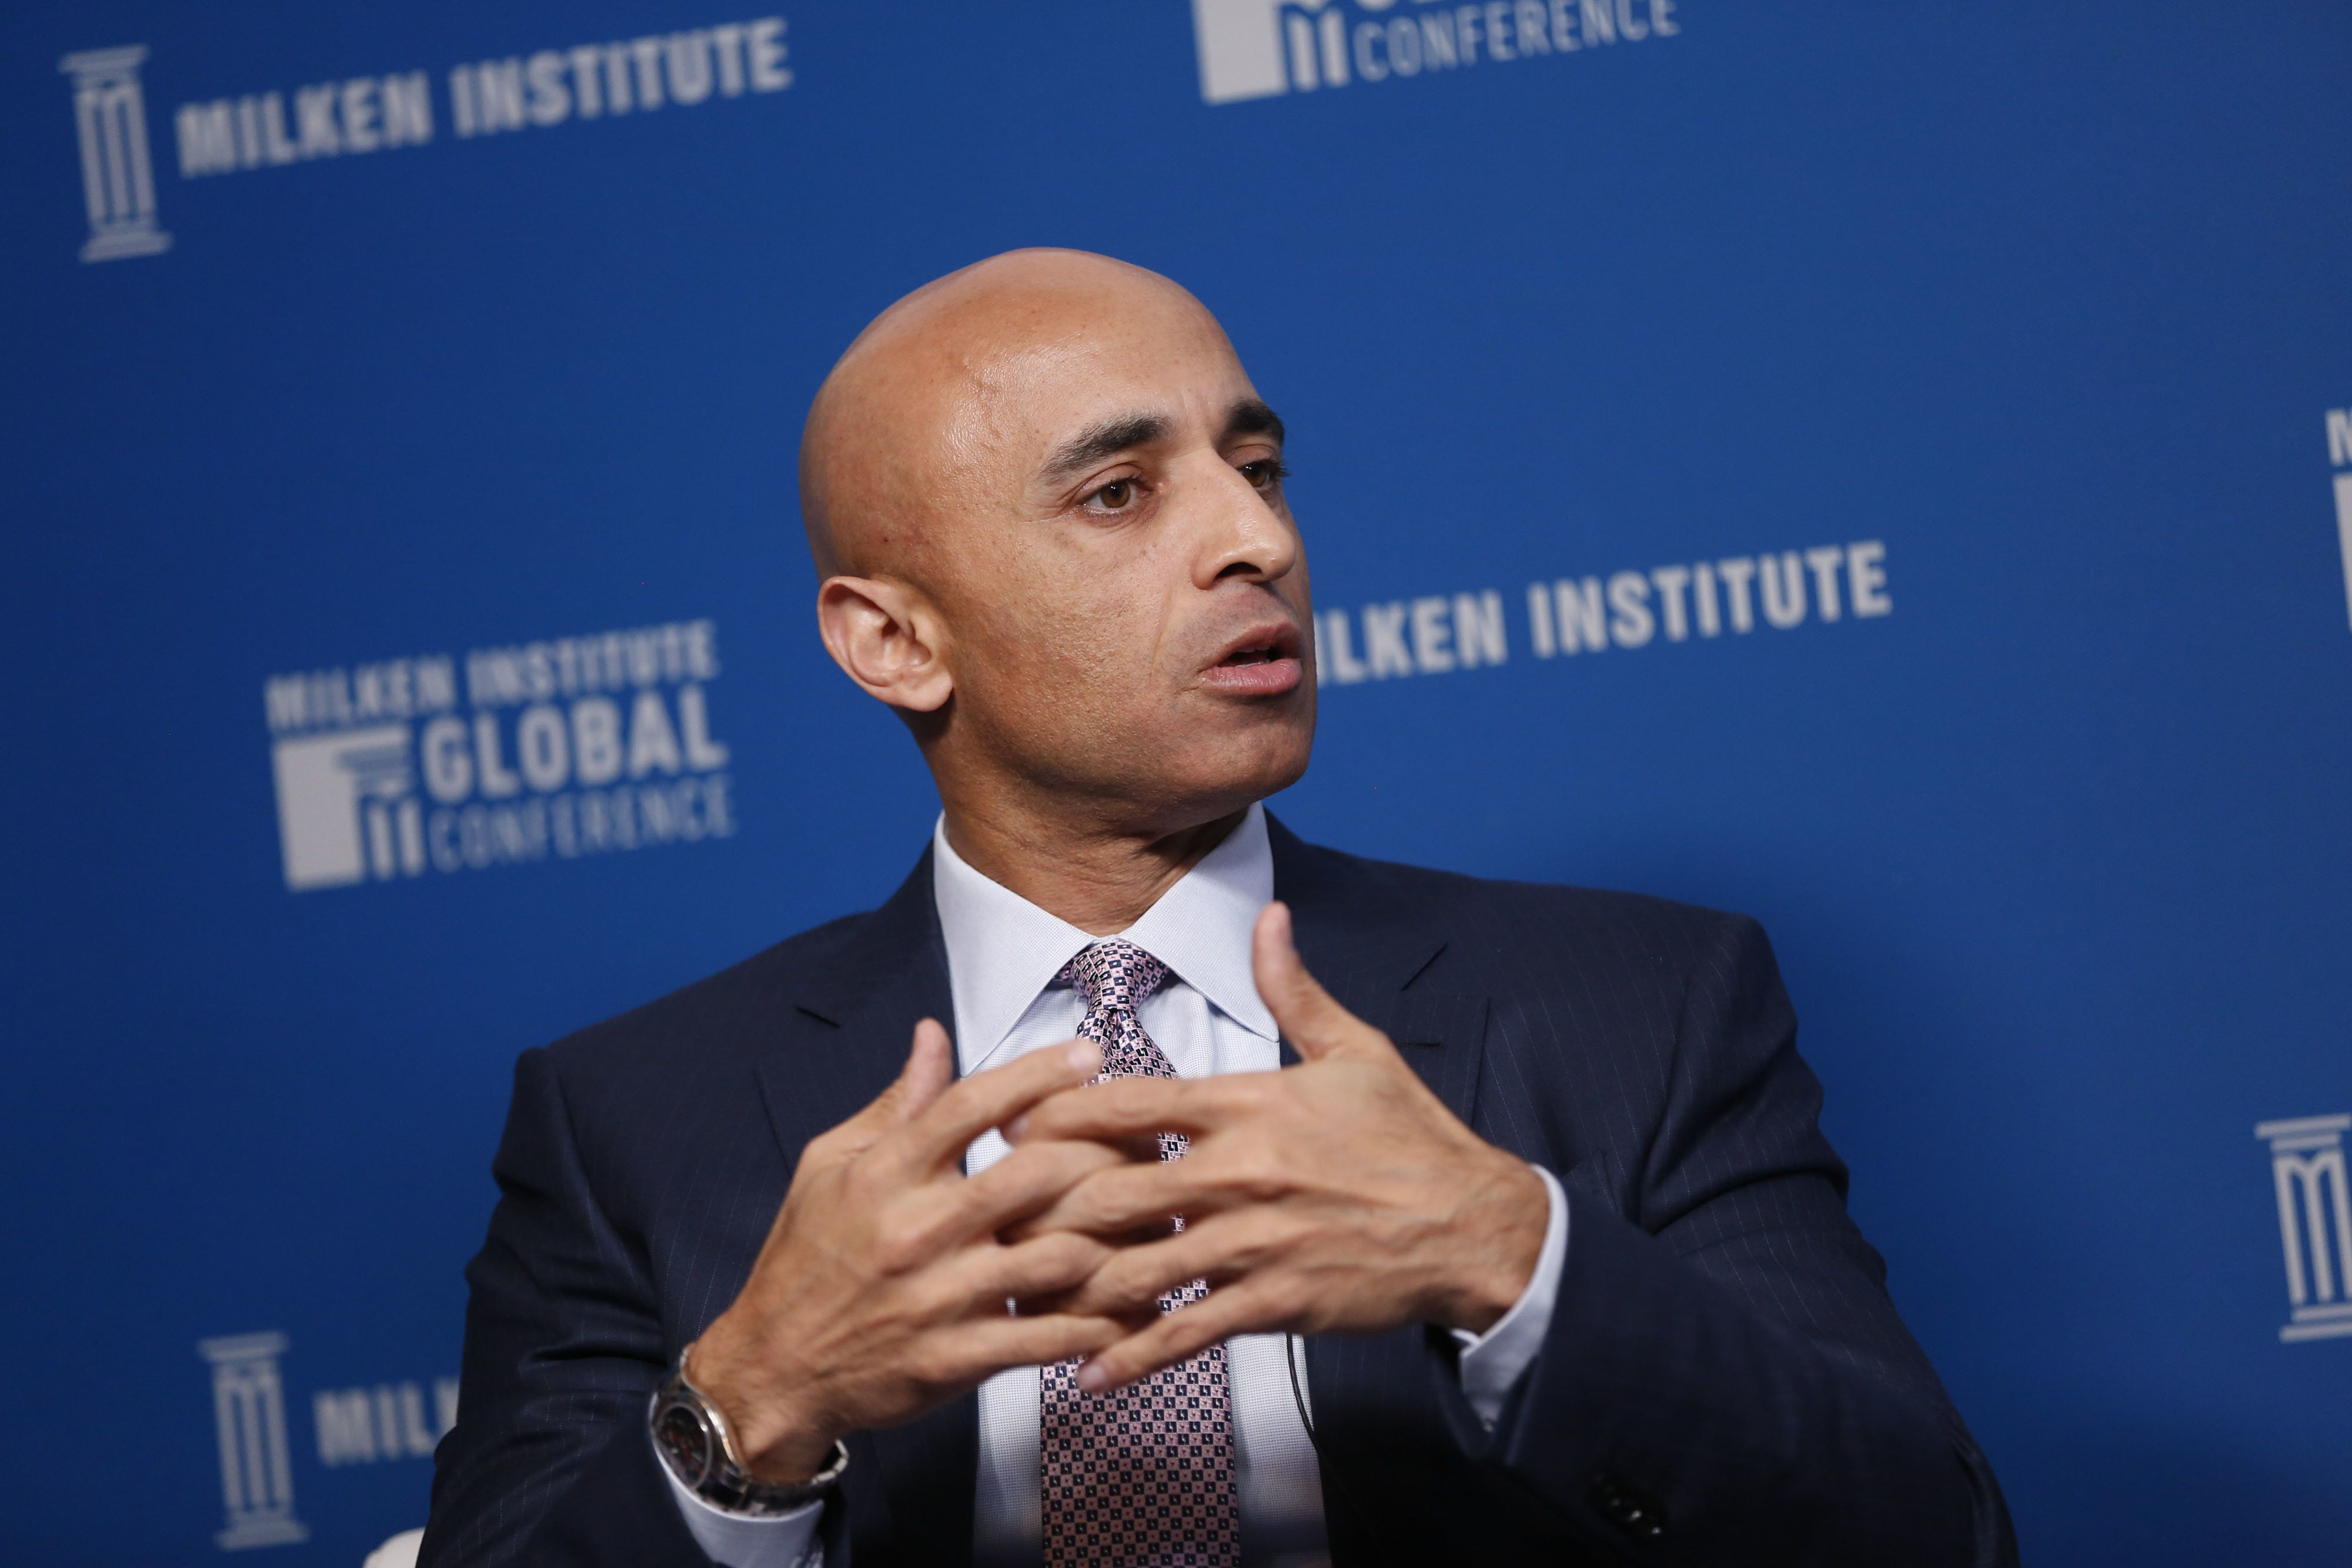 Yousef Al Otaiba, United Arab Emirates' (UAE) ambassador to the U.S., speaks during the Milken Institute Global Conference in Beverly Hills, California, U.S., on Tuesday, May 2, 2017. The conference is a unique setting that convenes individuals with the capital, power and influence to move the world forward meet face-to-face with those whose expertise and creativity are reinventing industry, philanthropy and media. Photographer: Patrick T. Fallon/Bloomberg via Getty Images